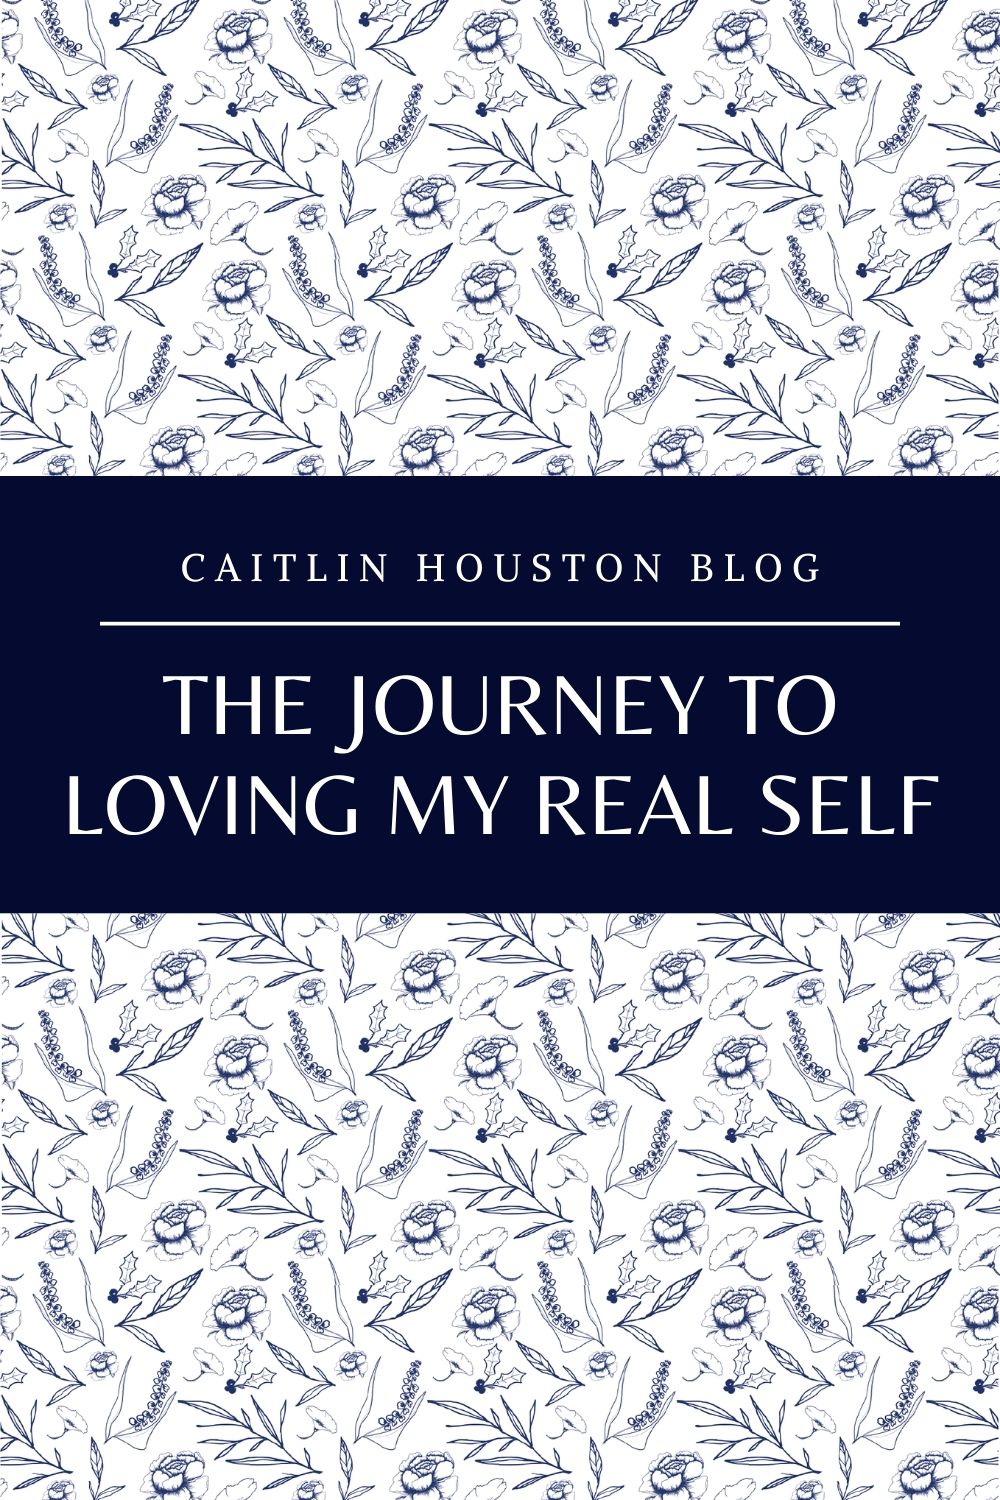 Do you love your real self? I think our world would be a better place if we allowed our differences to bring us together instead of setting us apart.